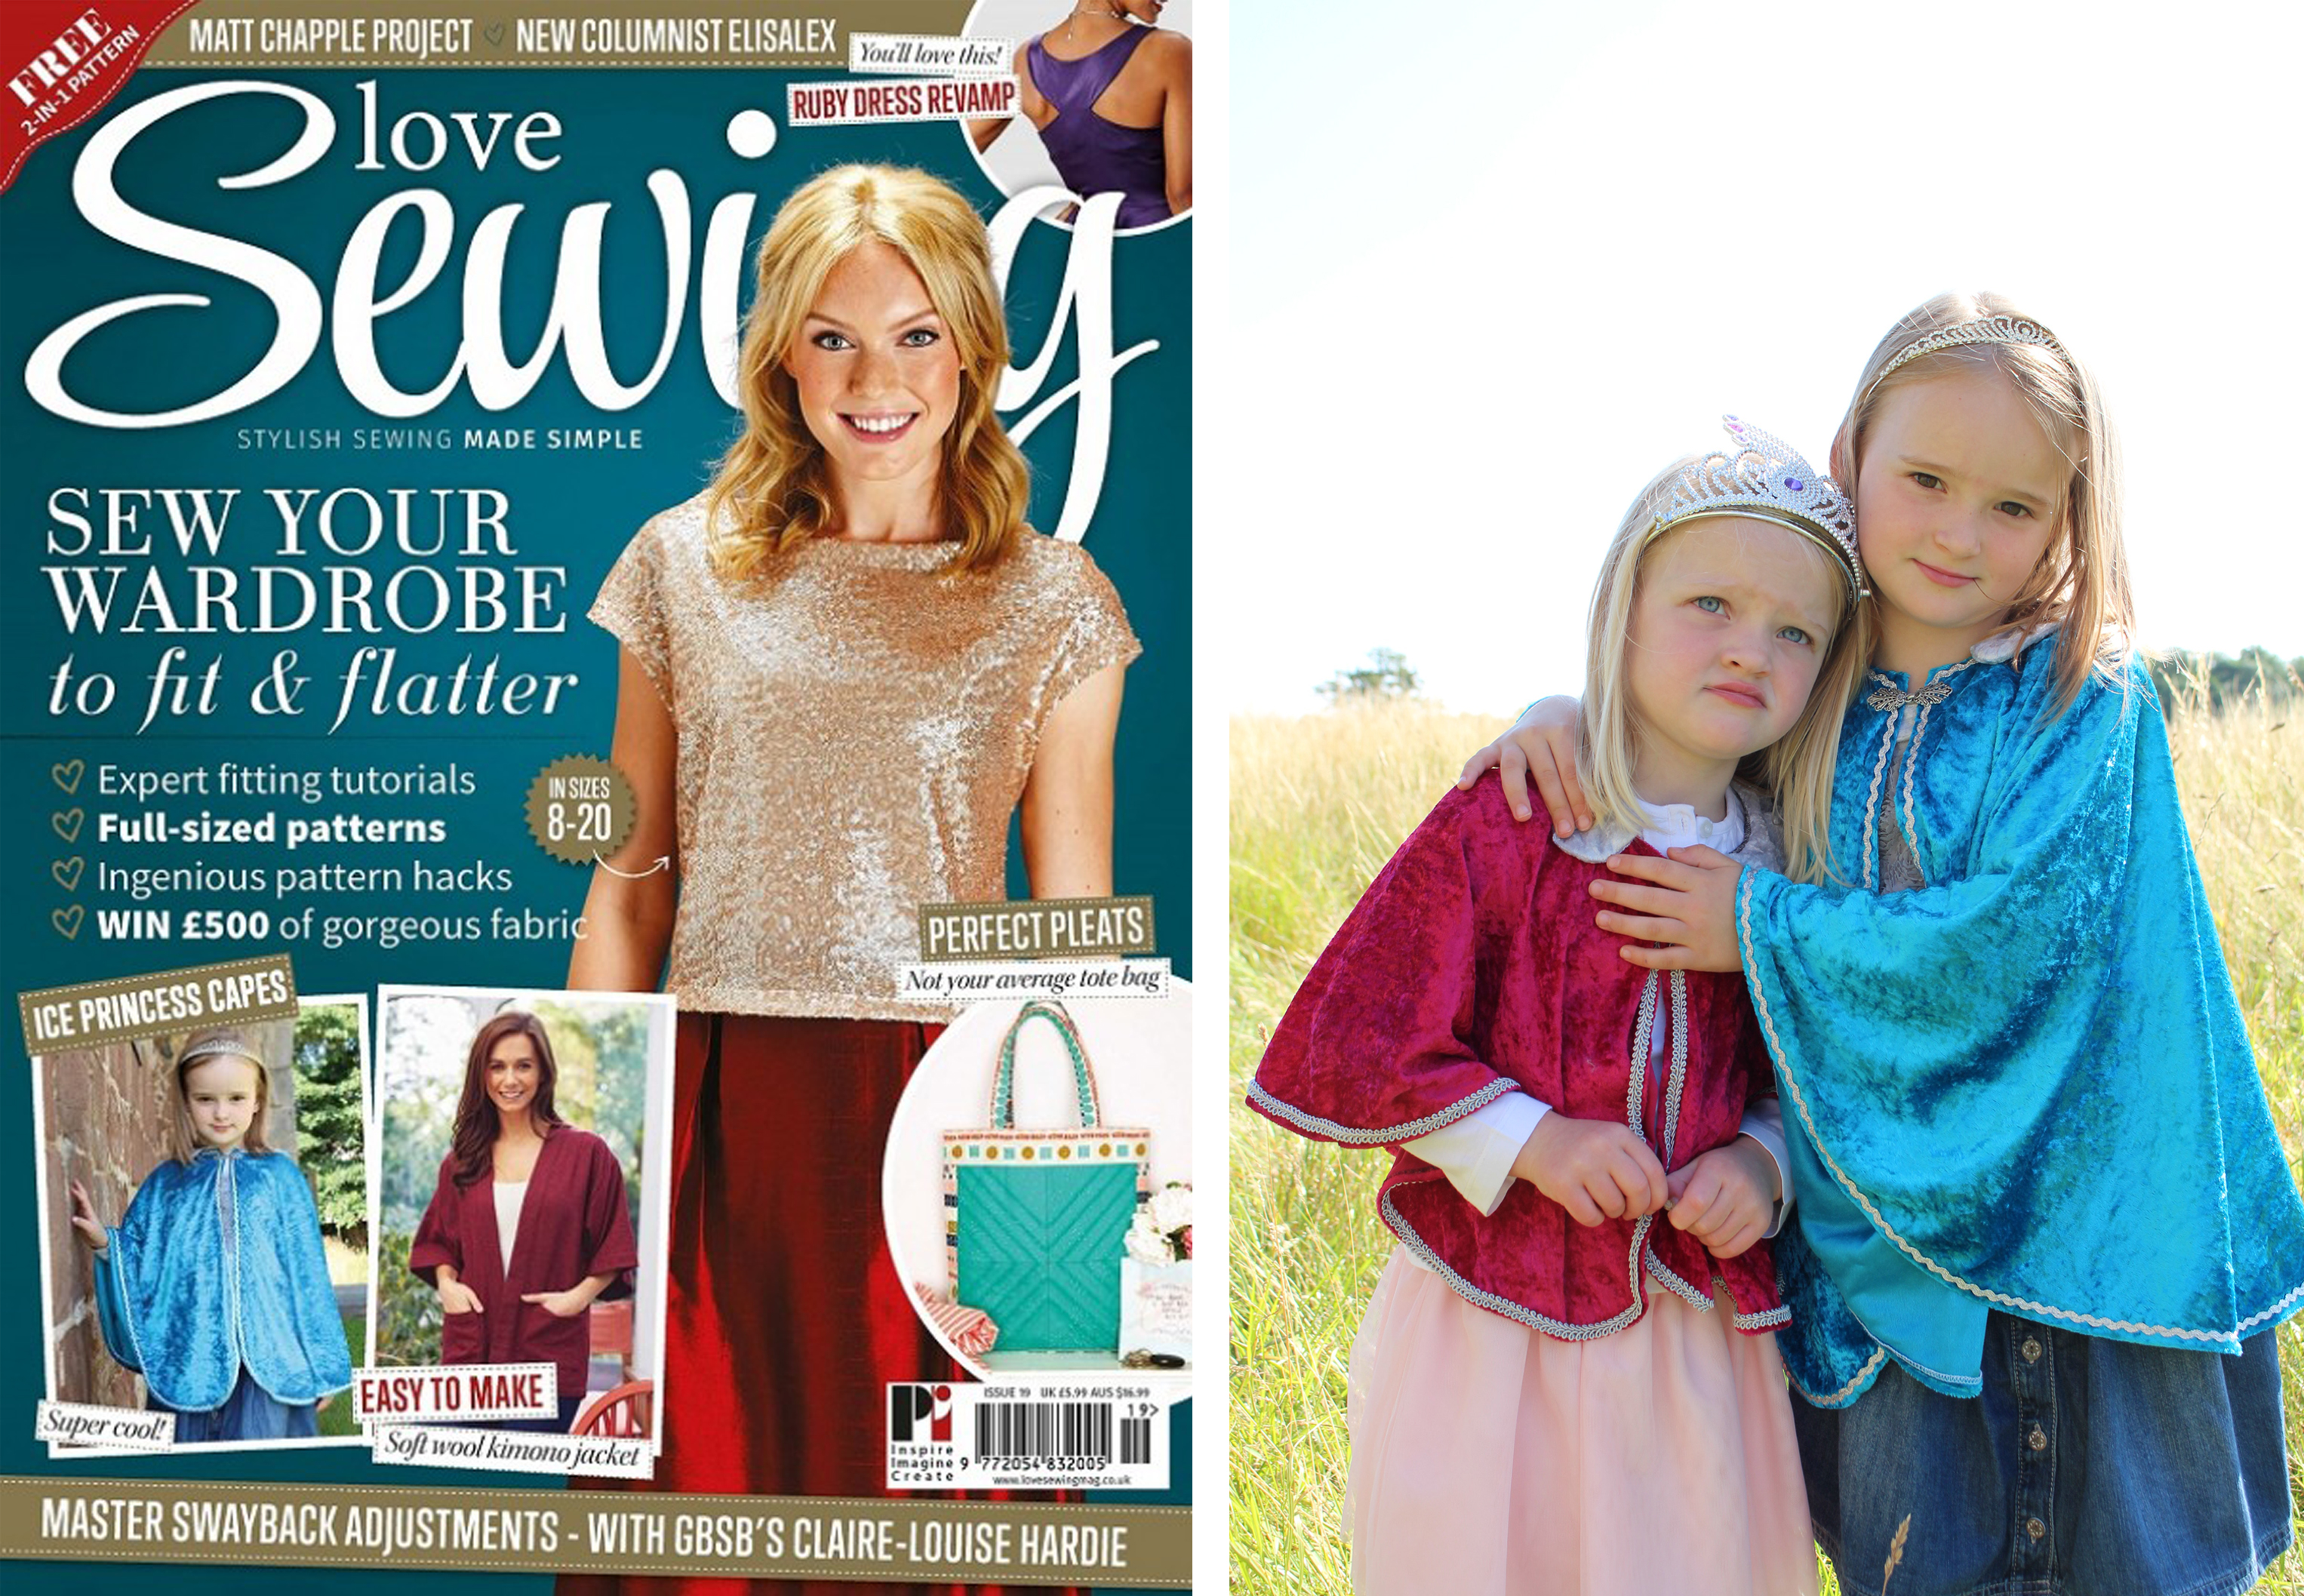 Love Sewing Issue 19 Royal Cape Feature Photo